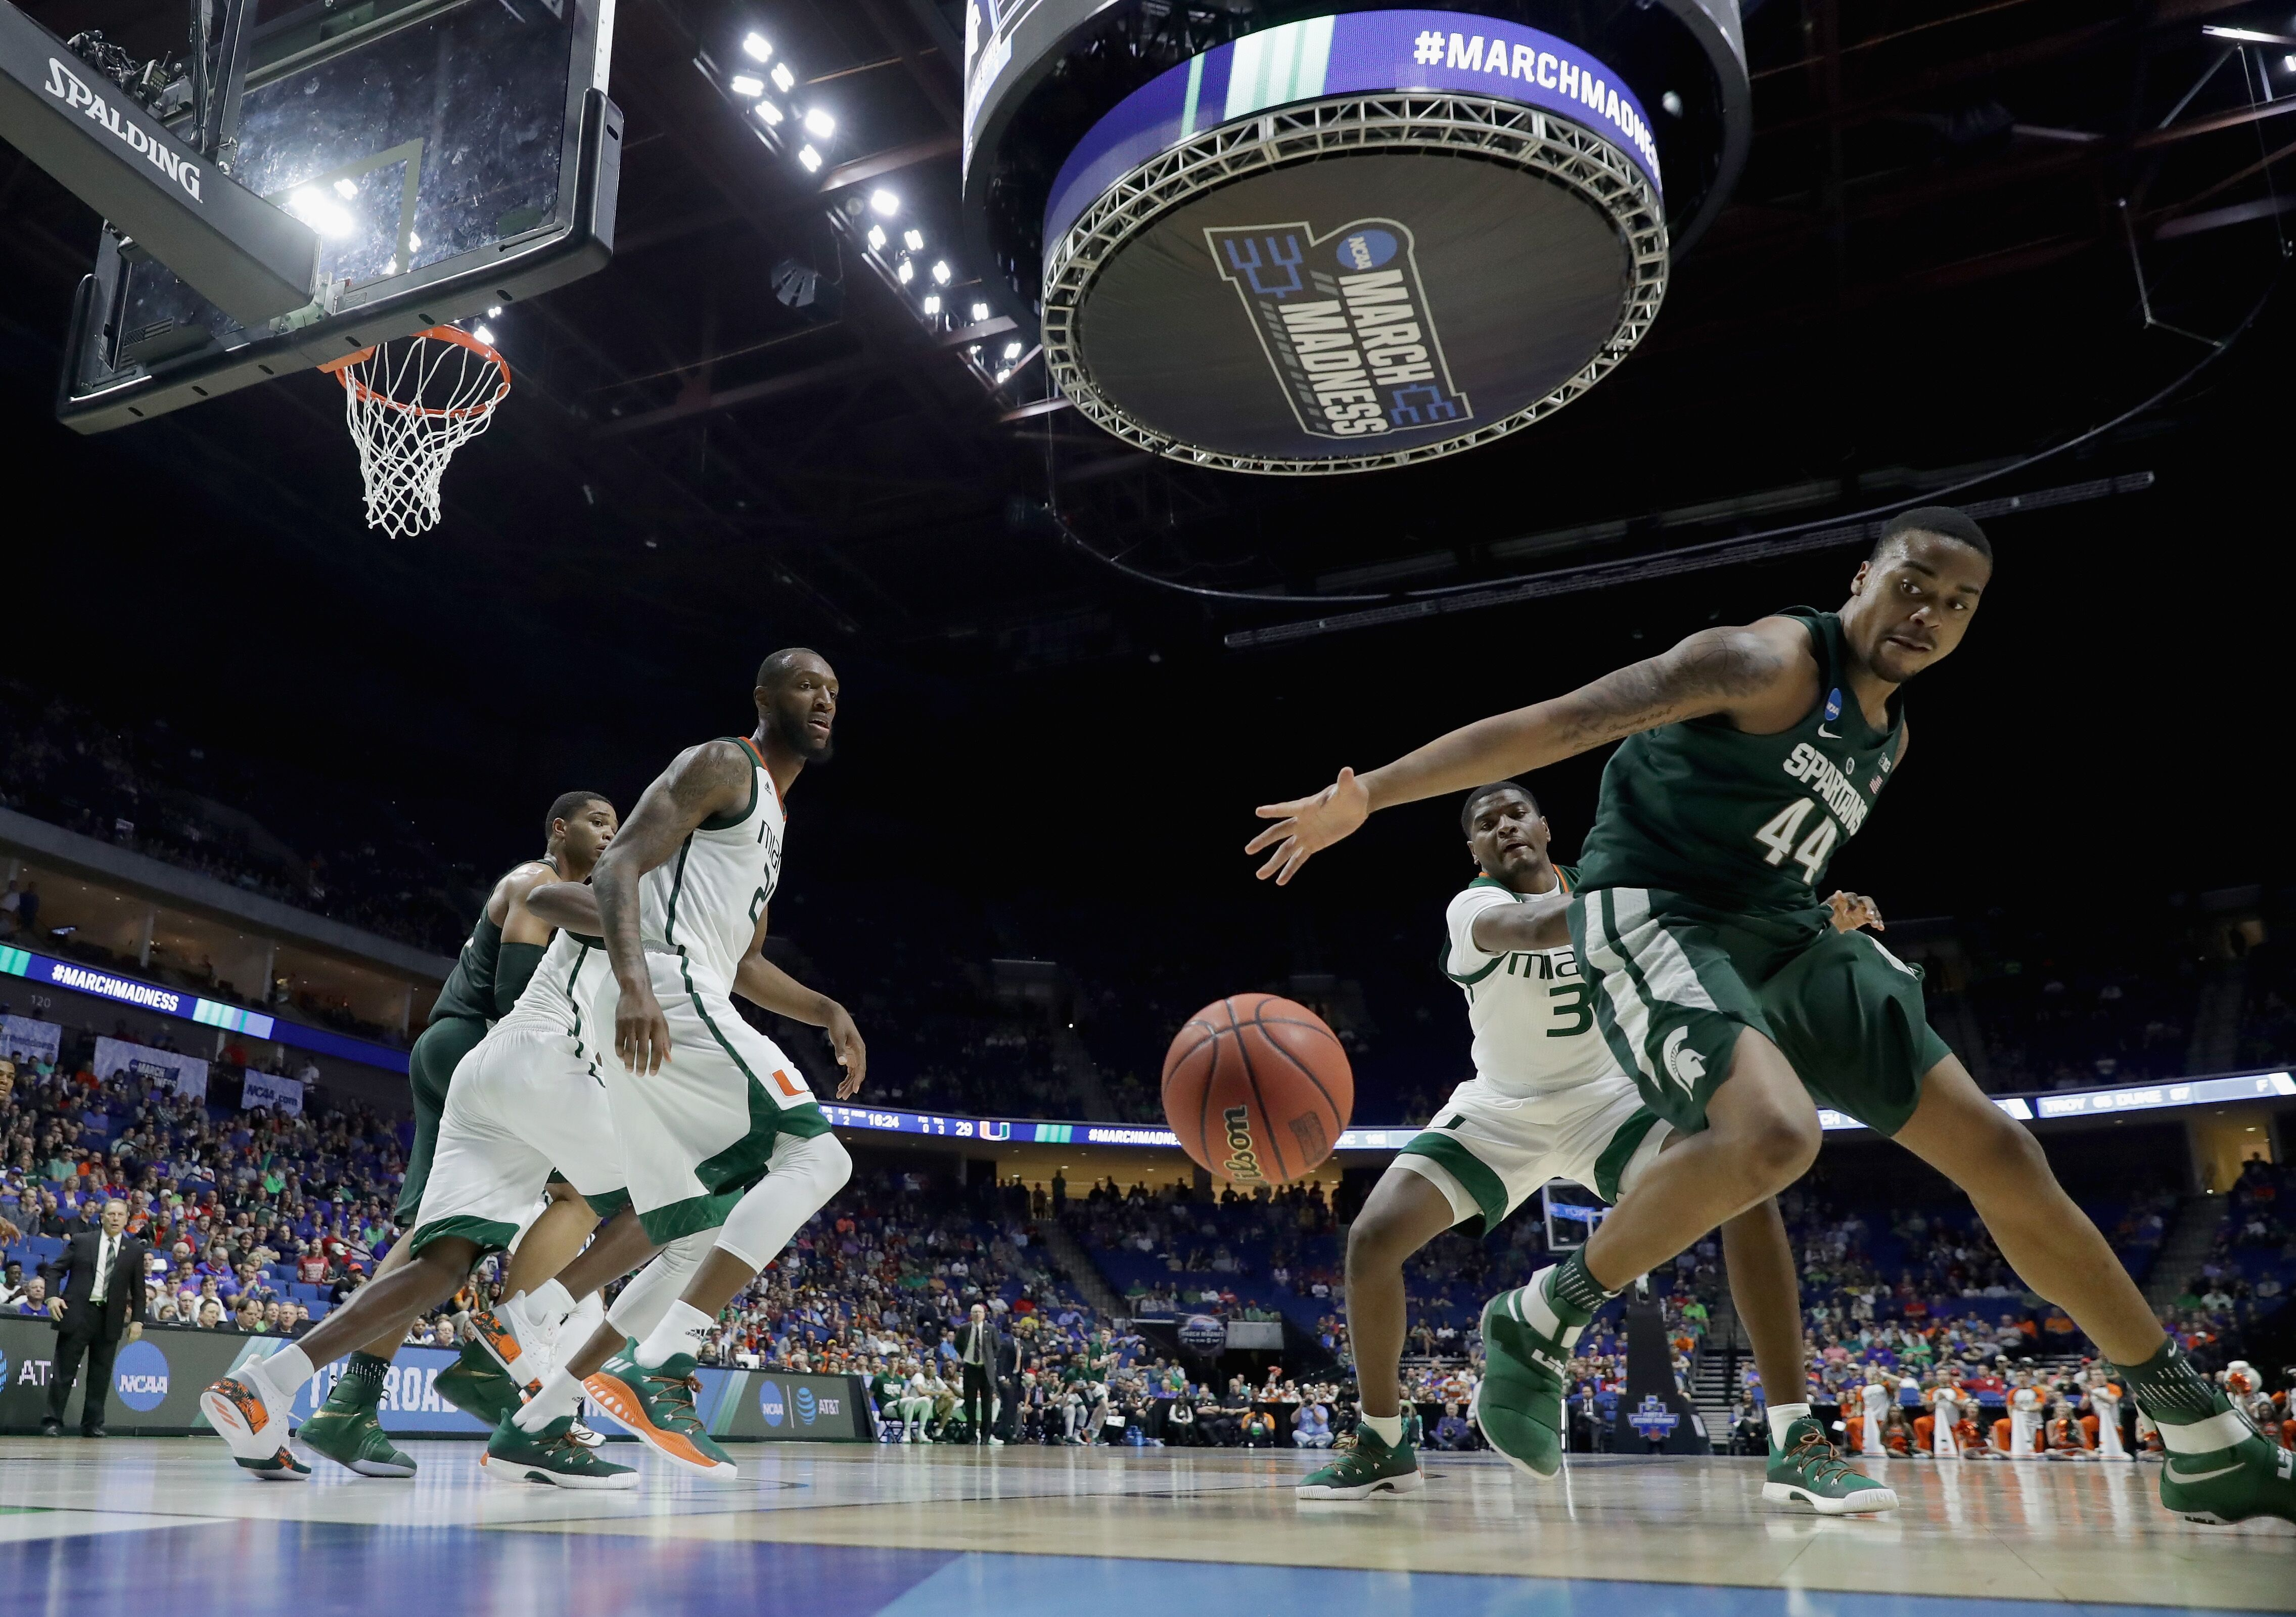 654645550-ncaa-basketball-tournament-michigan-state-v-miami.jpg